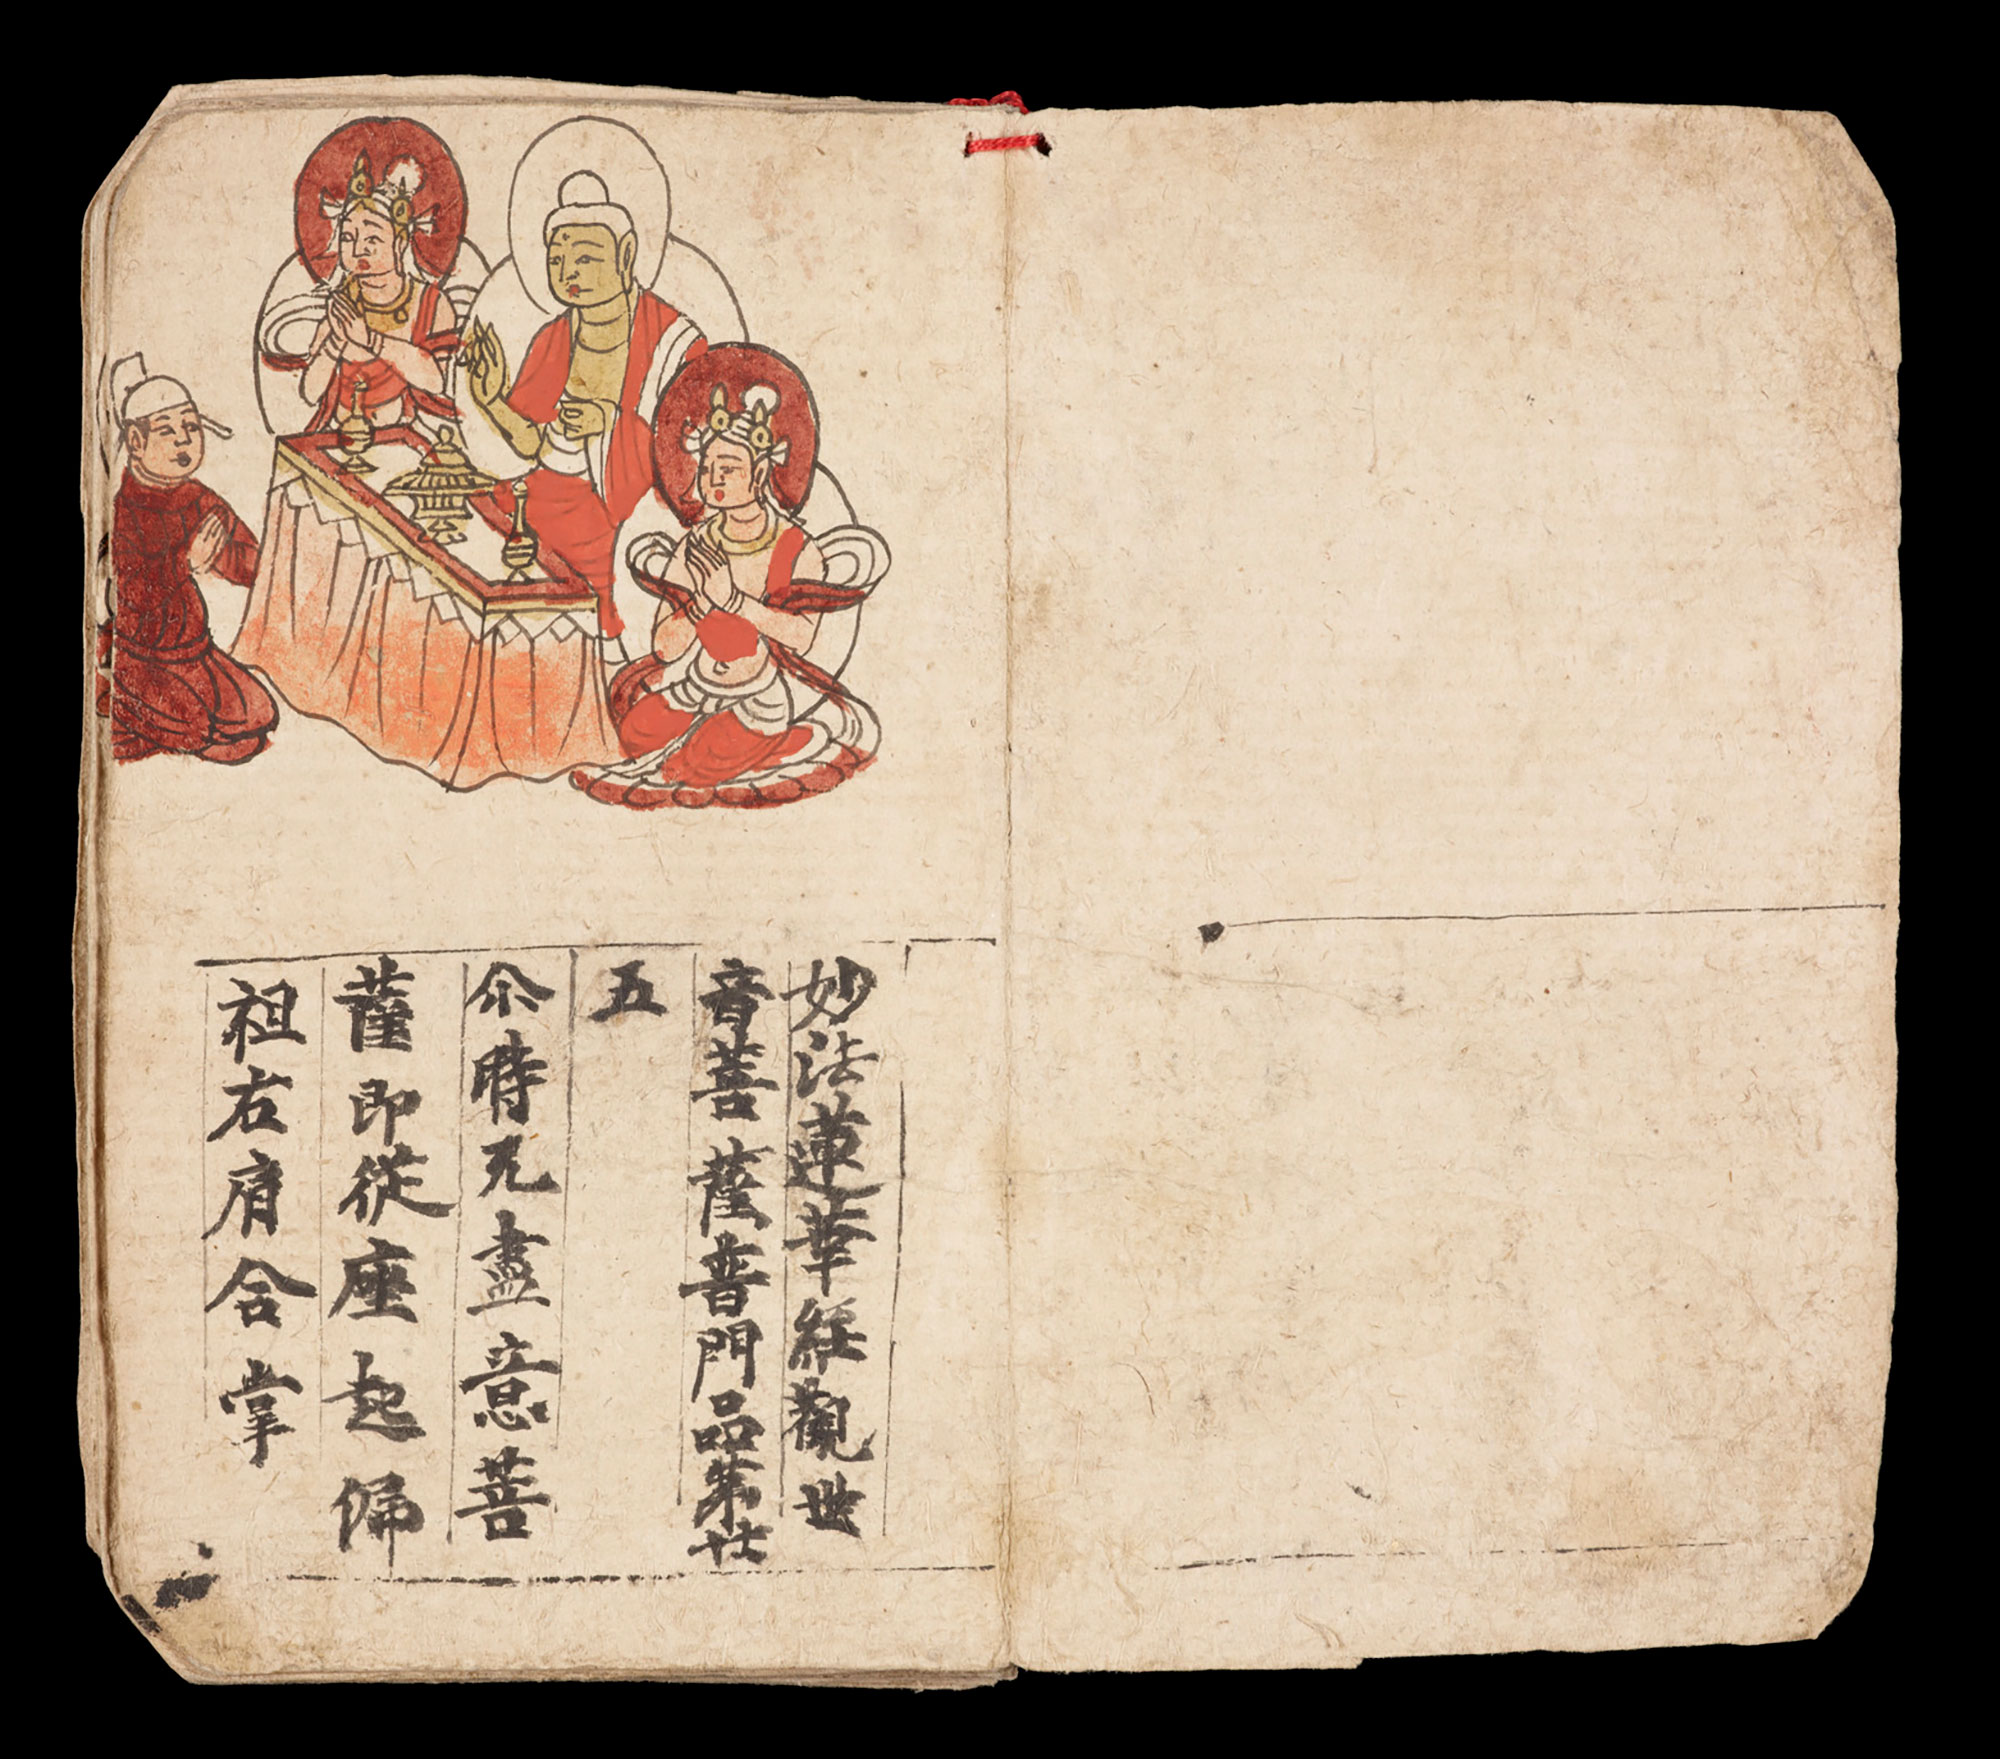 Booklet of the Avalokitesvara Sutra